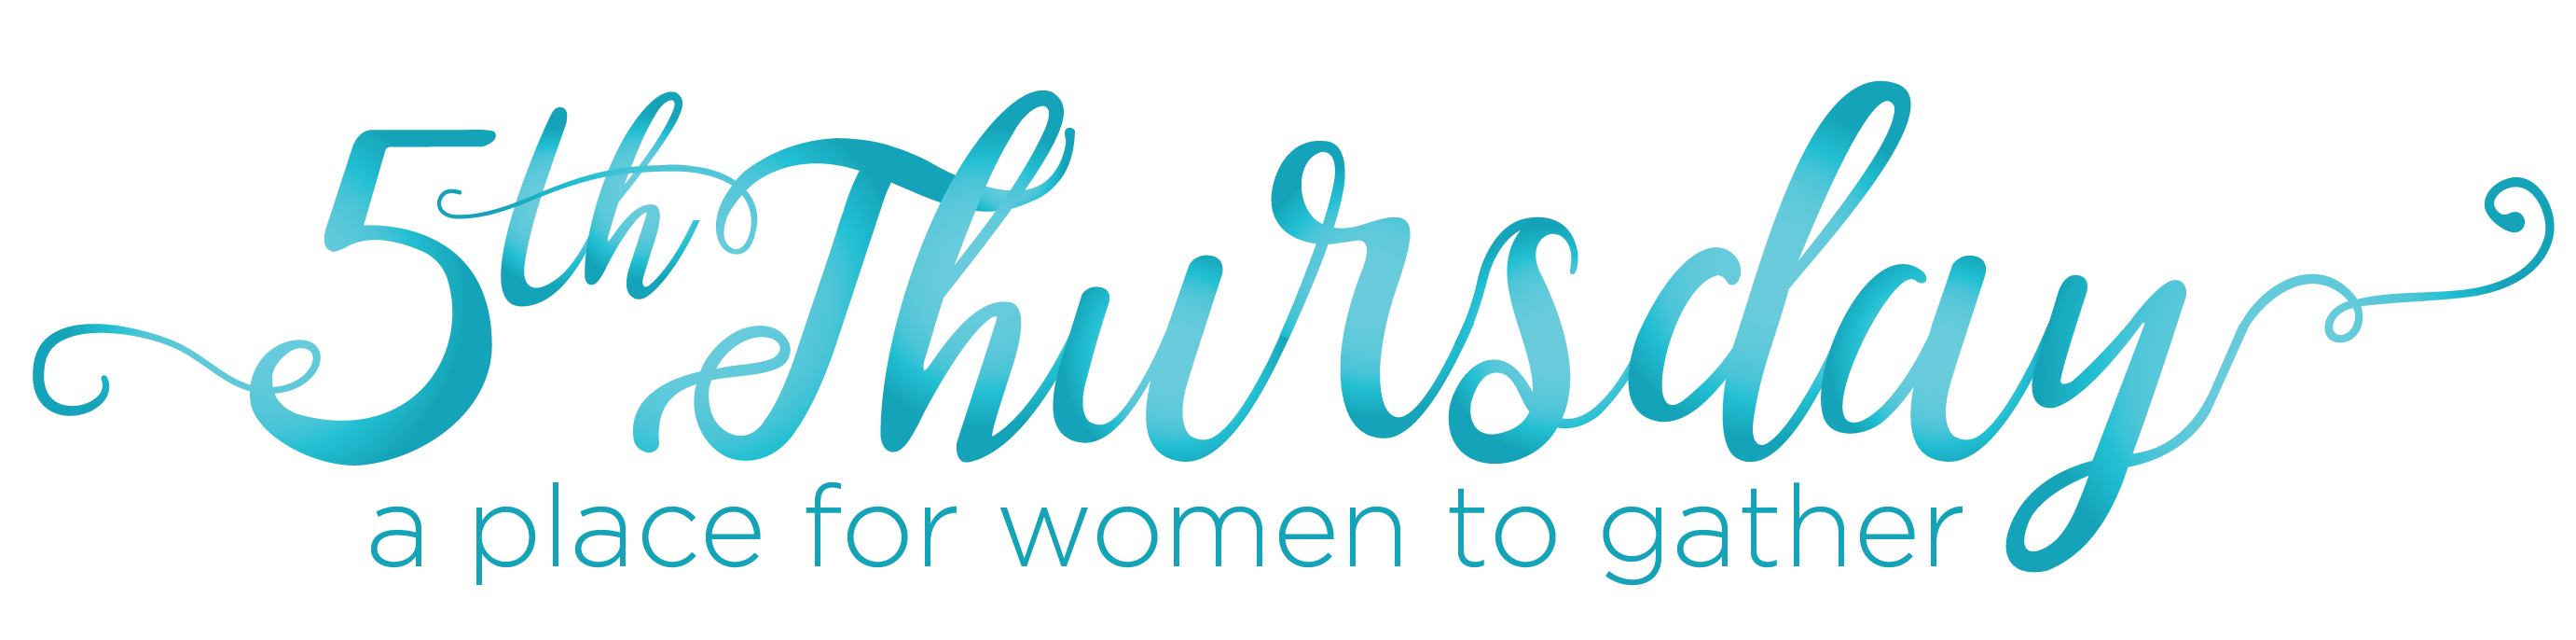 Fifth Thursday: A Gathering for Women May 2019 logo